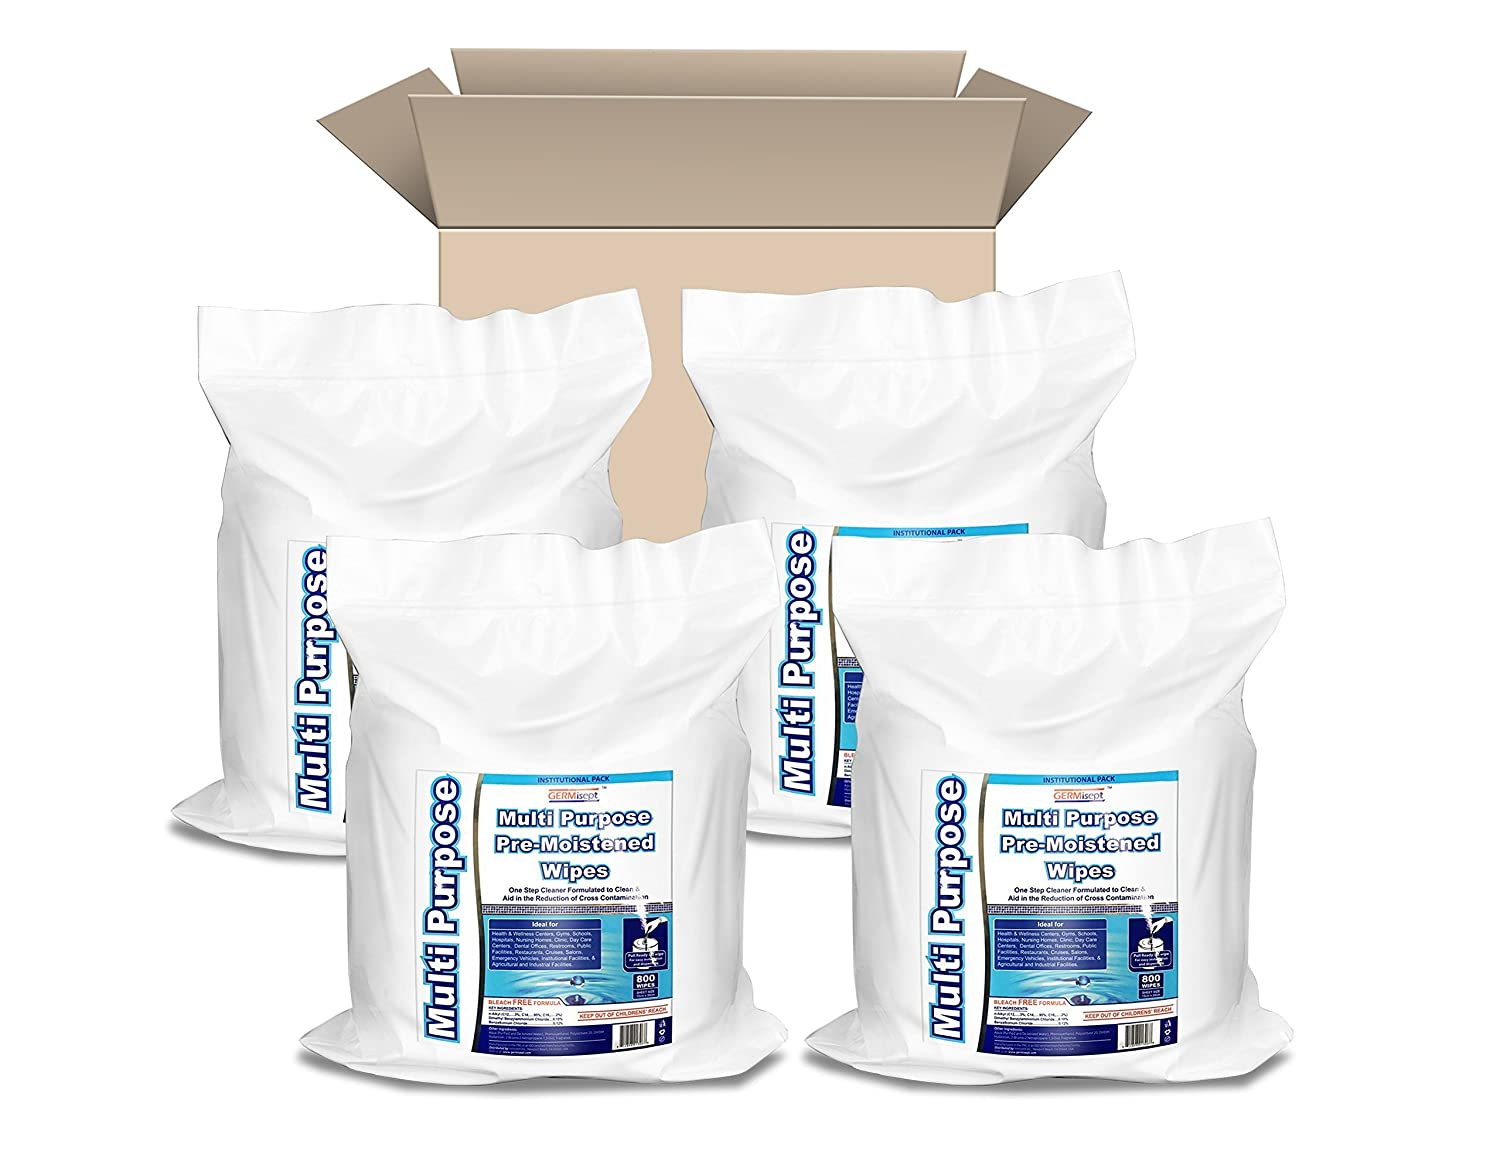 germisept Multipurposeジム& WellnessセンターCleaning Wipes (3200 Wipes = 800 Wipes/ロールX 4ロール/ケース) B077SNJPVX